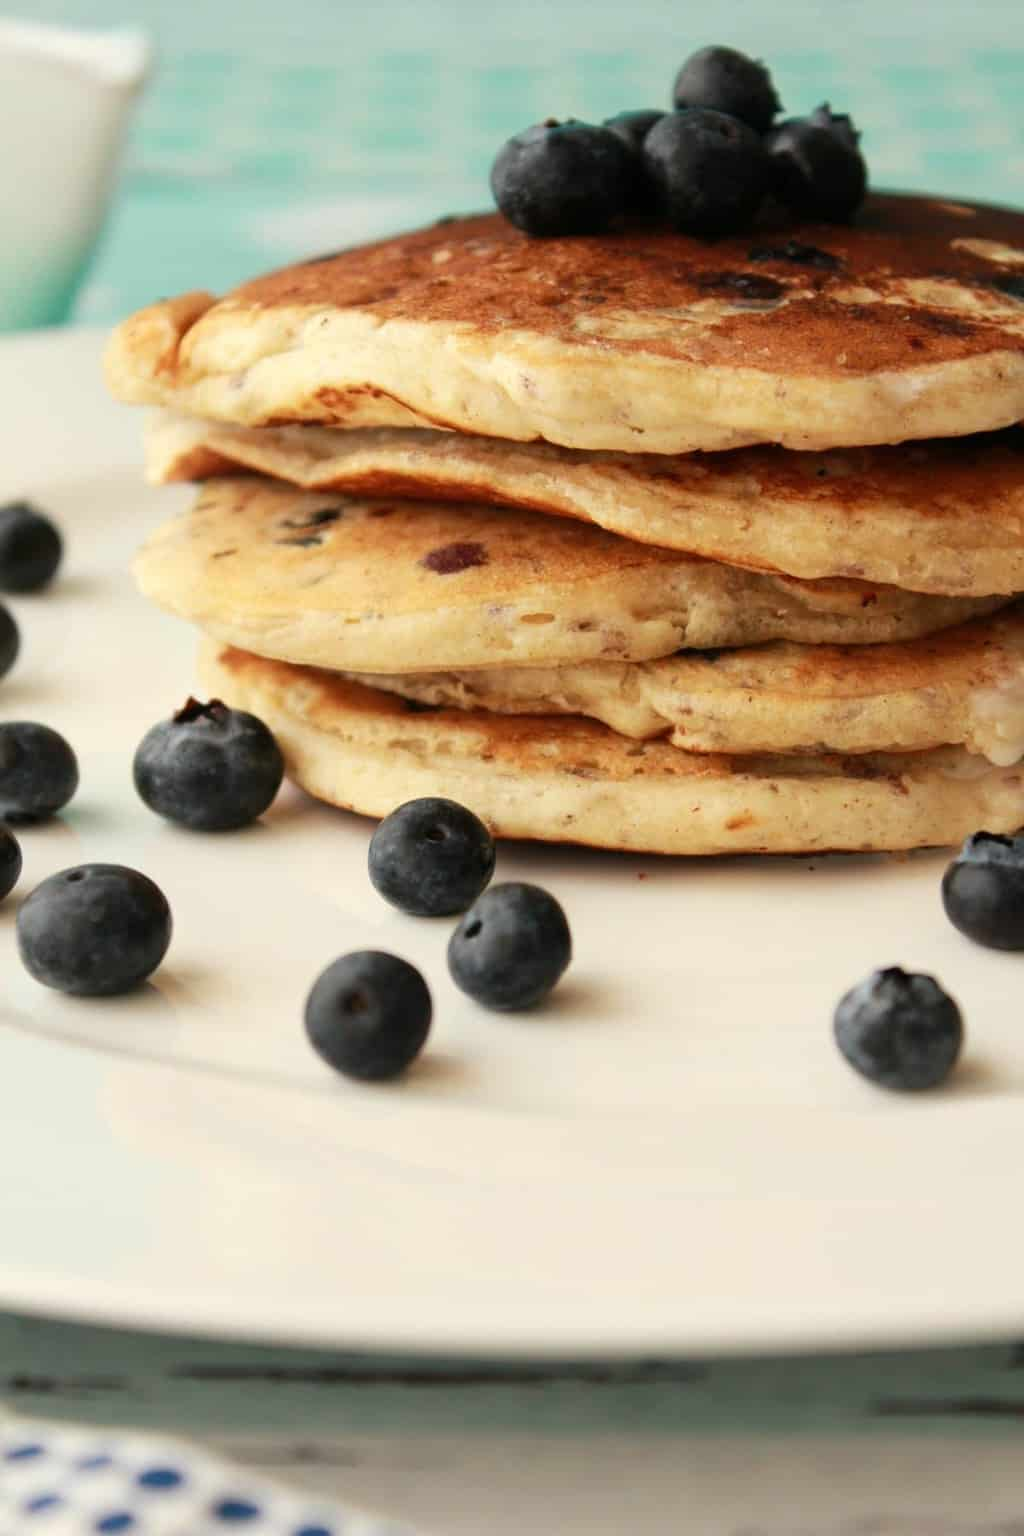 Vegan Blueberry Pancakes. Perfect for a vegan breakfast with fresh blueberries, vegan whipped cream and maple syrup! #vegan #lovingitvegan #breakfast #pancakes